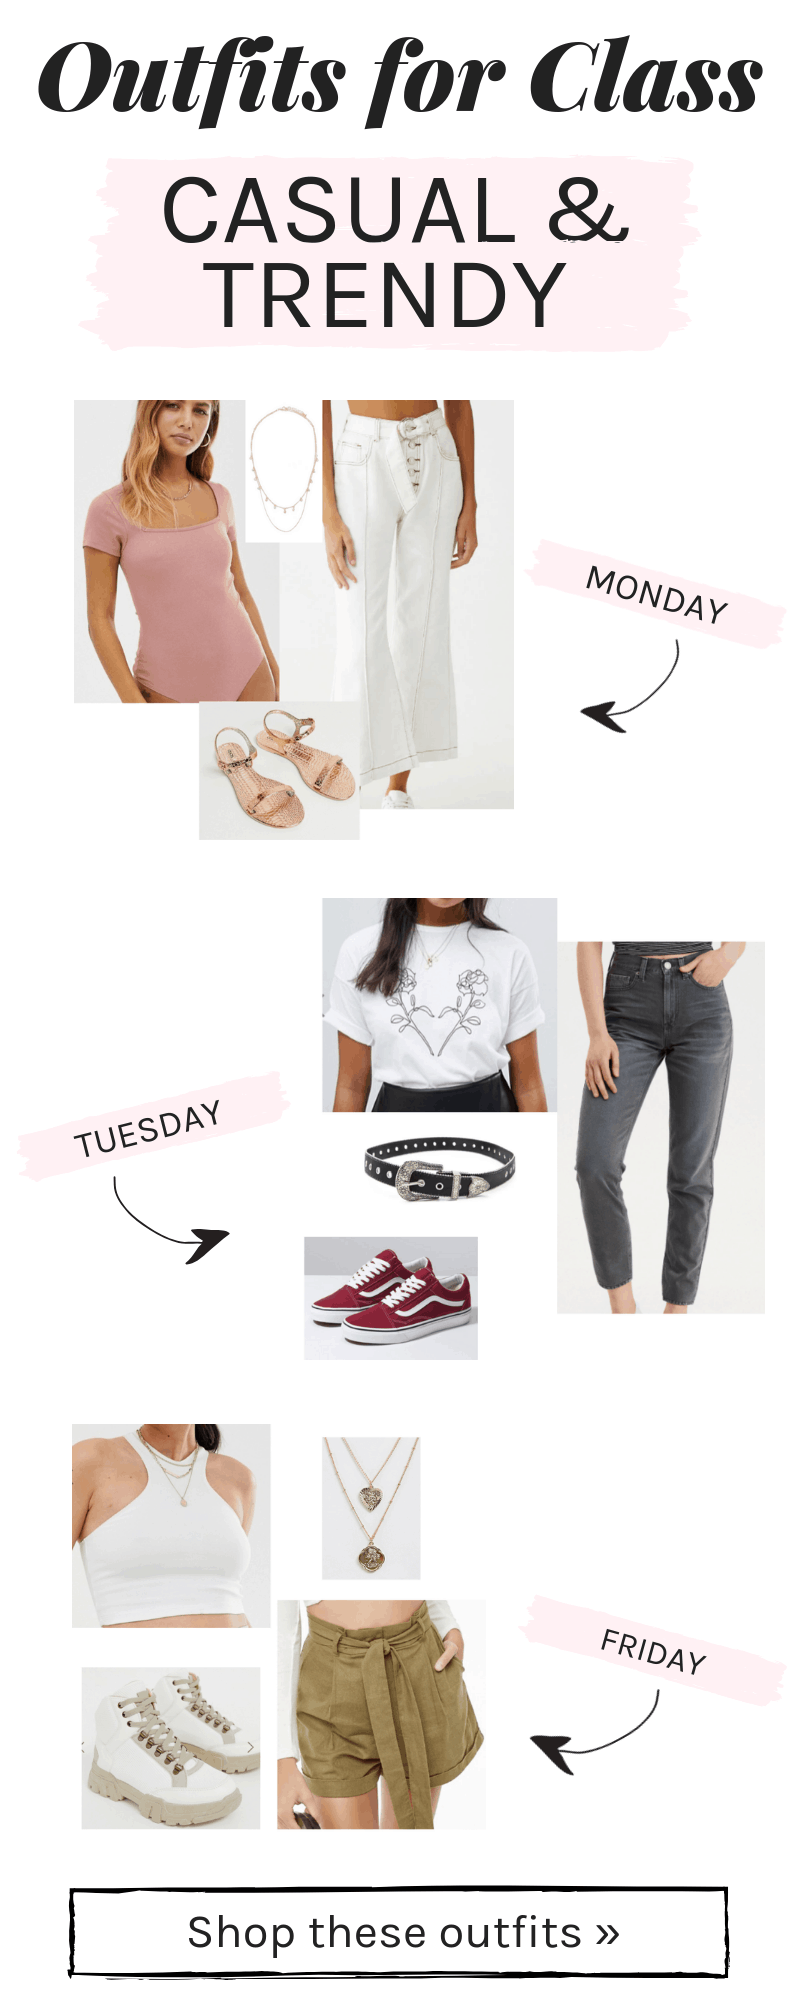 4 Spring Outfits for Class (for Every Day of the Week) - College